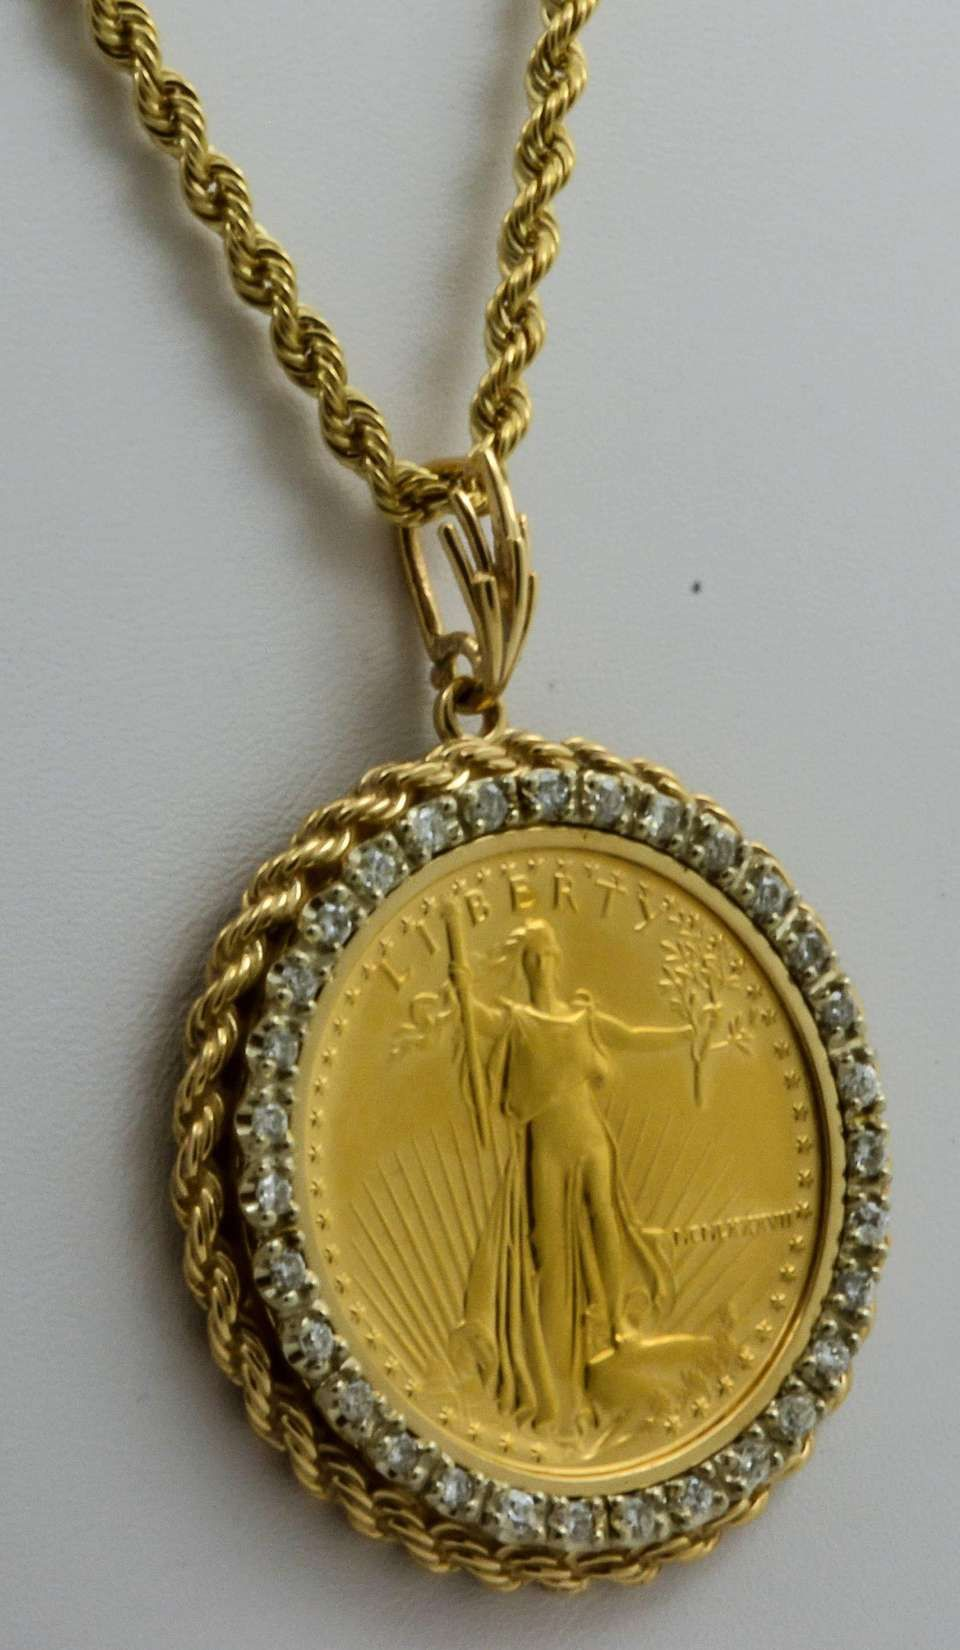 View This Item And Discover Similar Pendant Necklaces For Sale At 1stdibs The 50 Liberty United States Gold C Ancient Coin Jewelry Coin Pendant Coin Jewelry